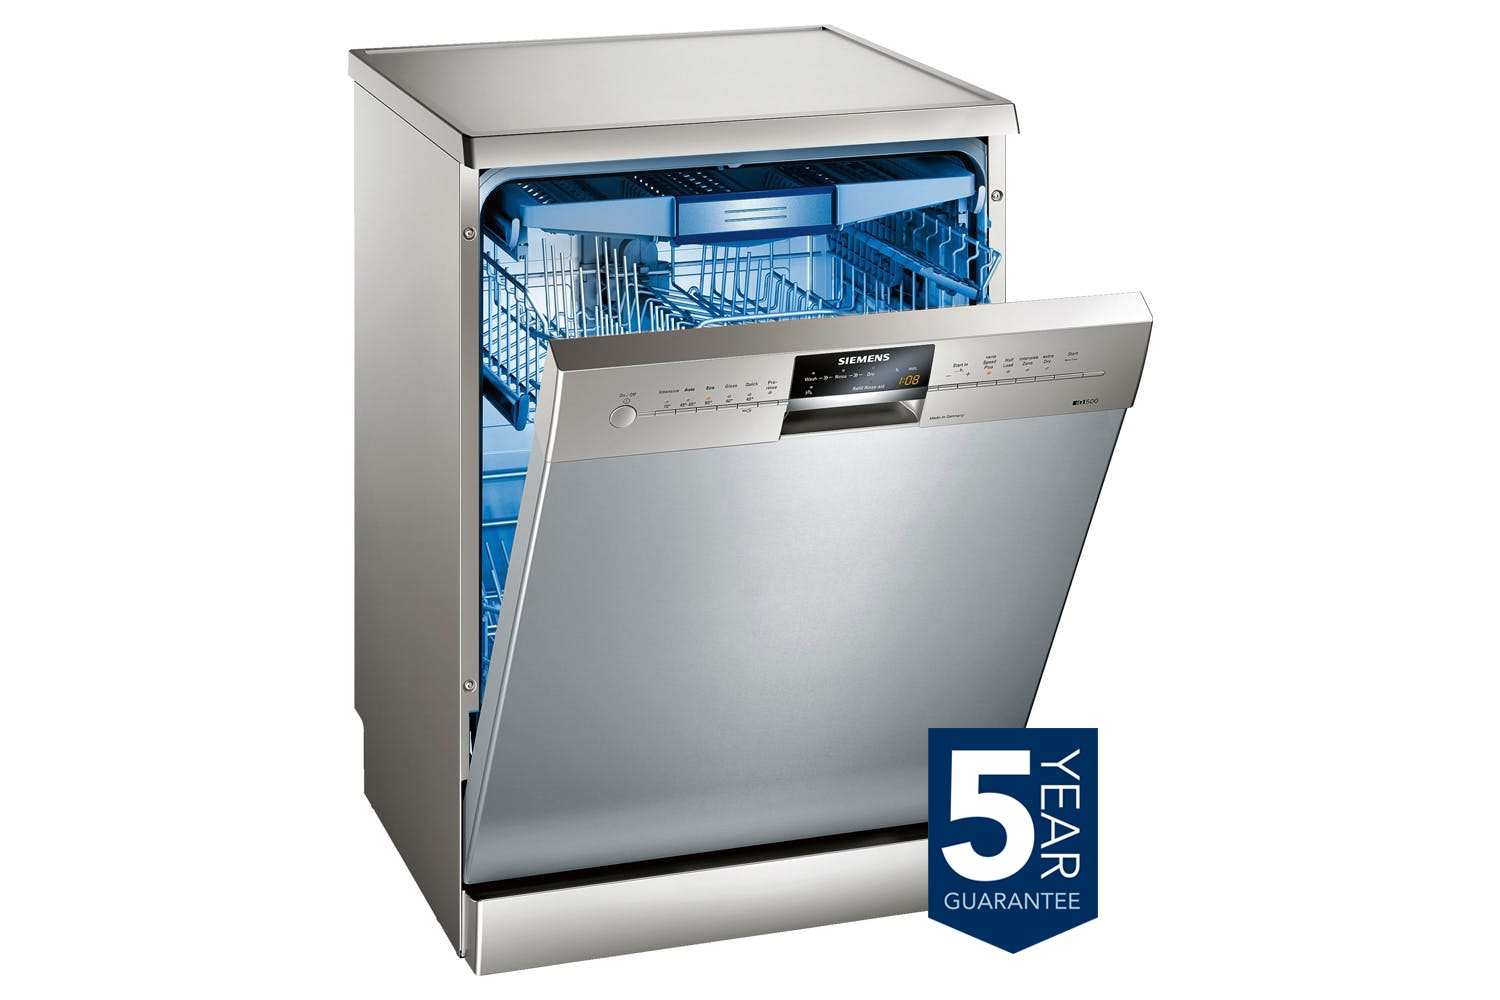 Siemens 14 Place Freestanding Dishwasher | SN26M892GB